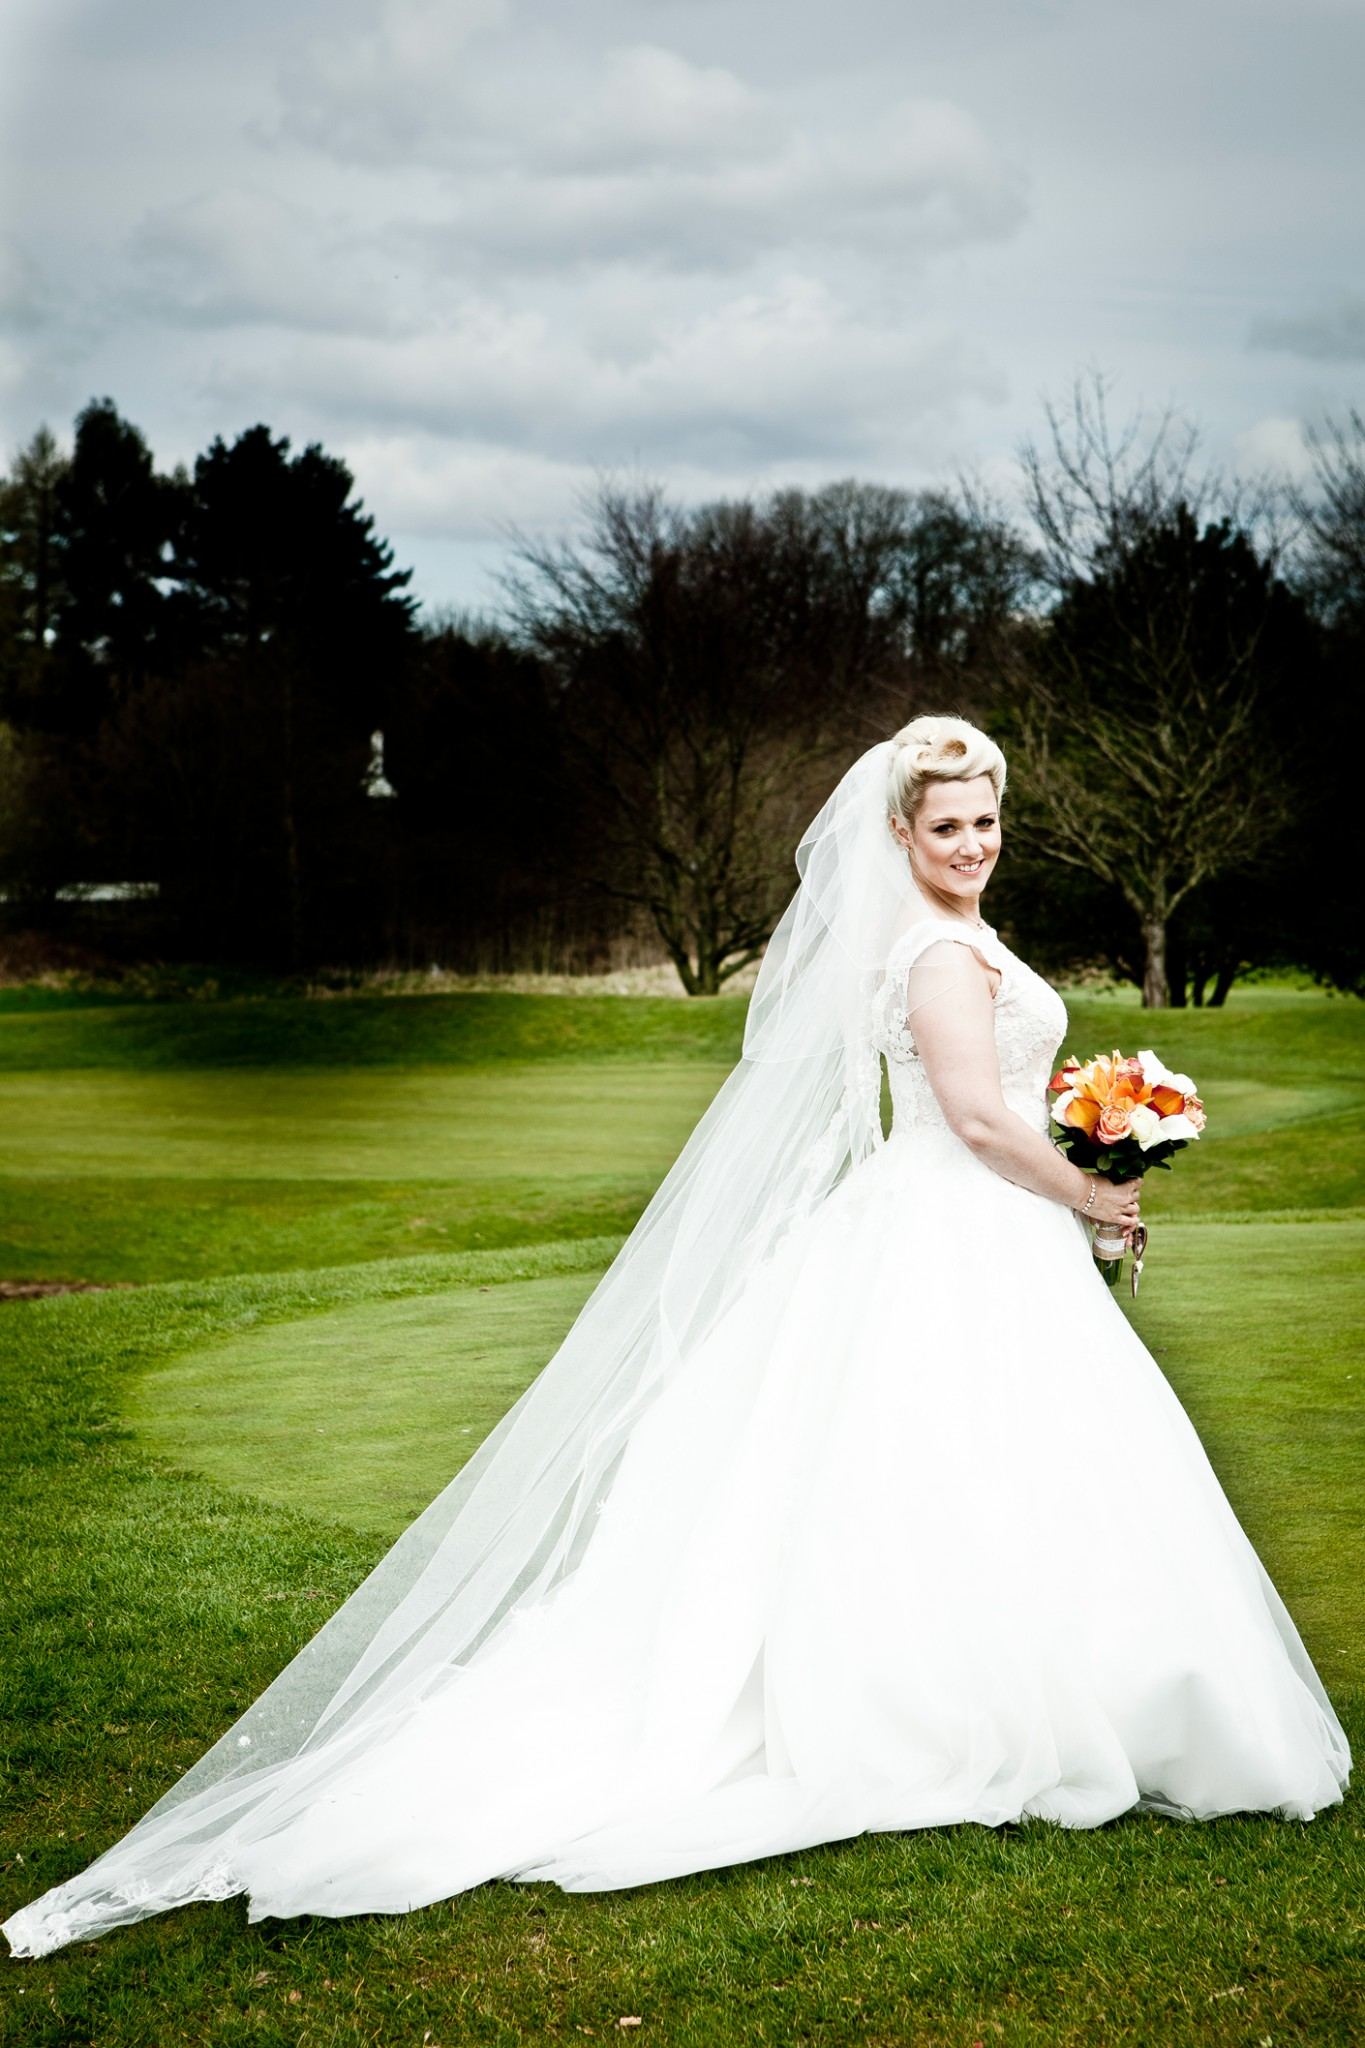 photography-of-the-brides-wedding-dress-in-macclesfield-cheshire